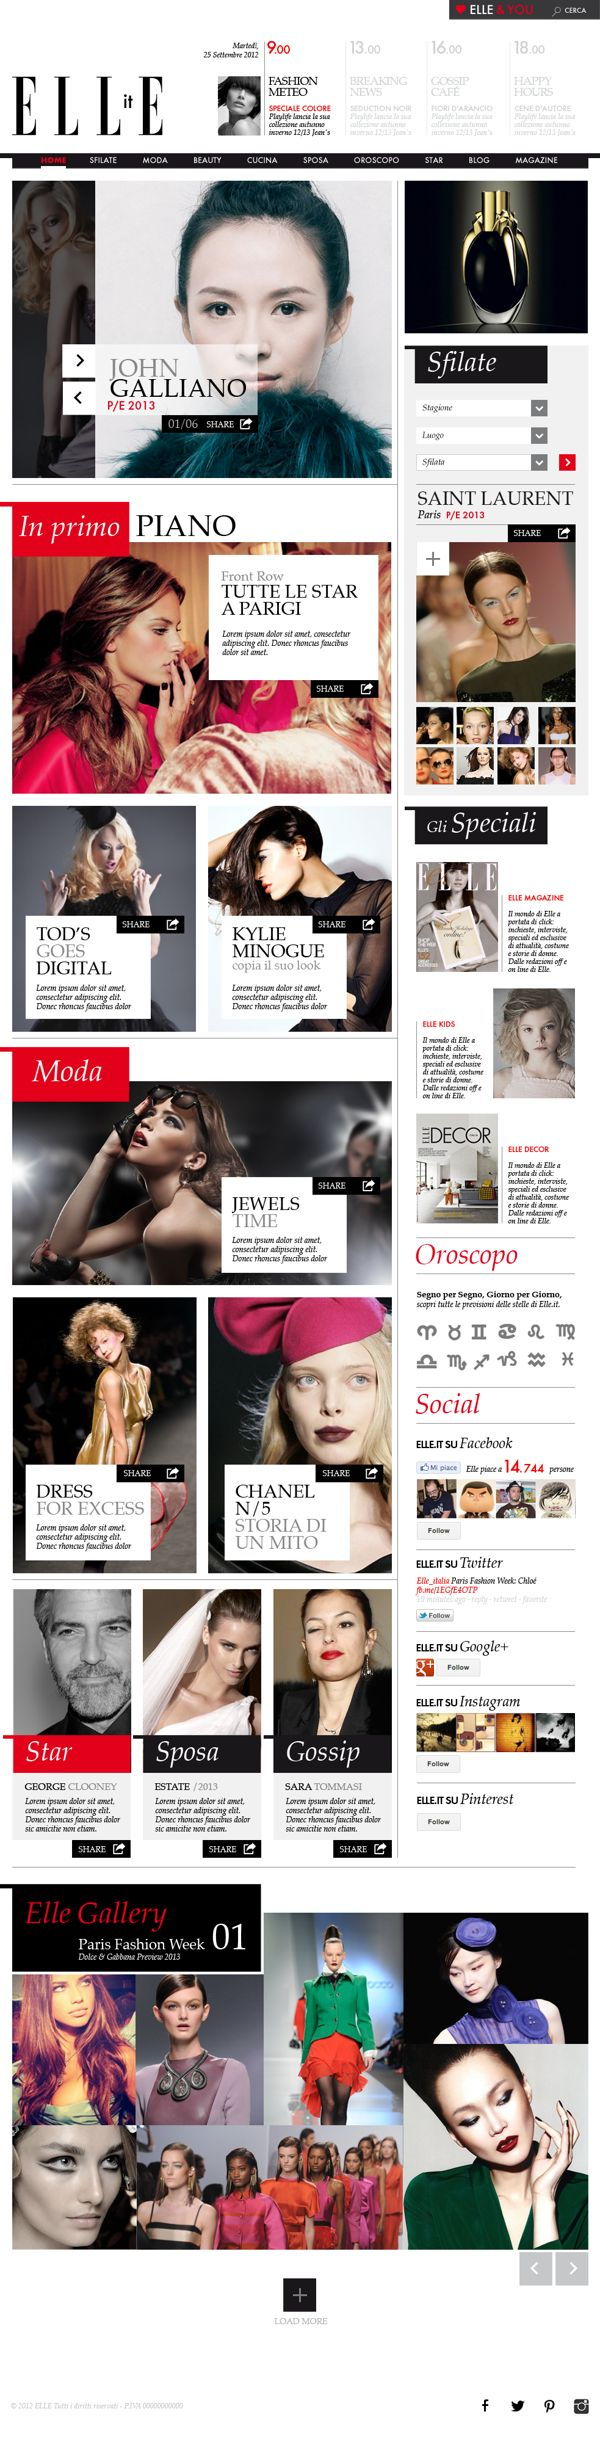 Graphic Design. Web. Fashion | #webdesign #it #web #design #layout #userinterface #website #webdesign < repinned by www.BlickeDeeler.de | Take a look at www.WebsiteDesign-Hamburg.de